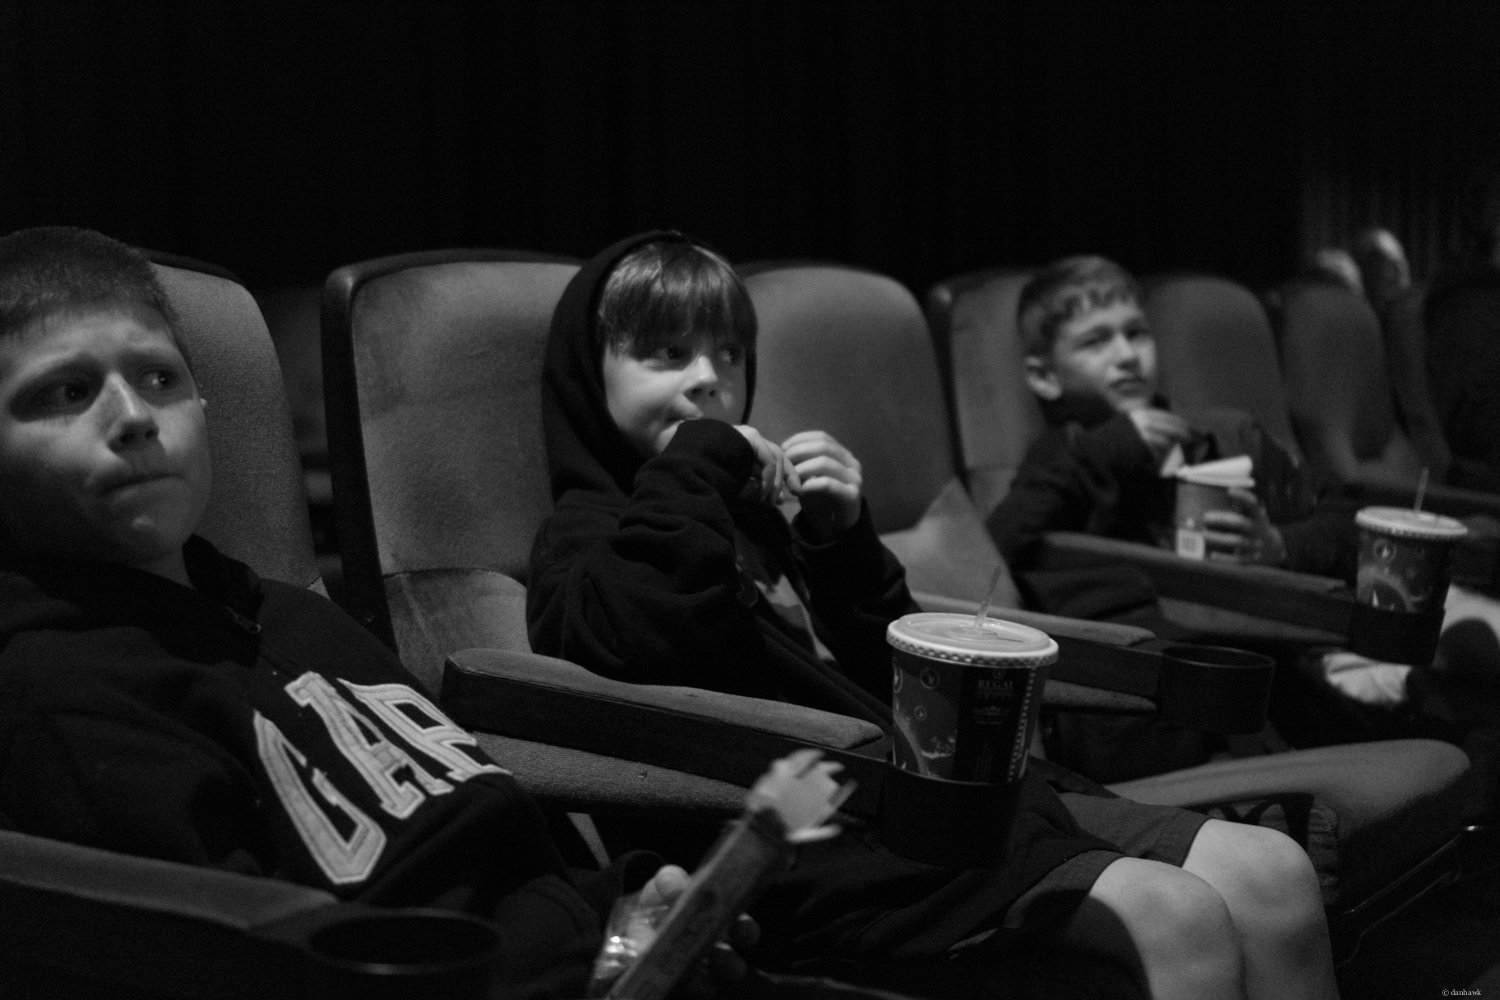 Dudes at the Movies | 365 Project | August 25th, 2013 | 35mm, f/1.8, ISO 3200, 1/8